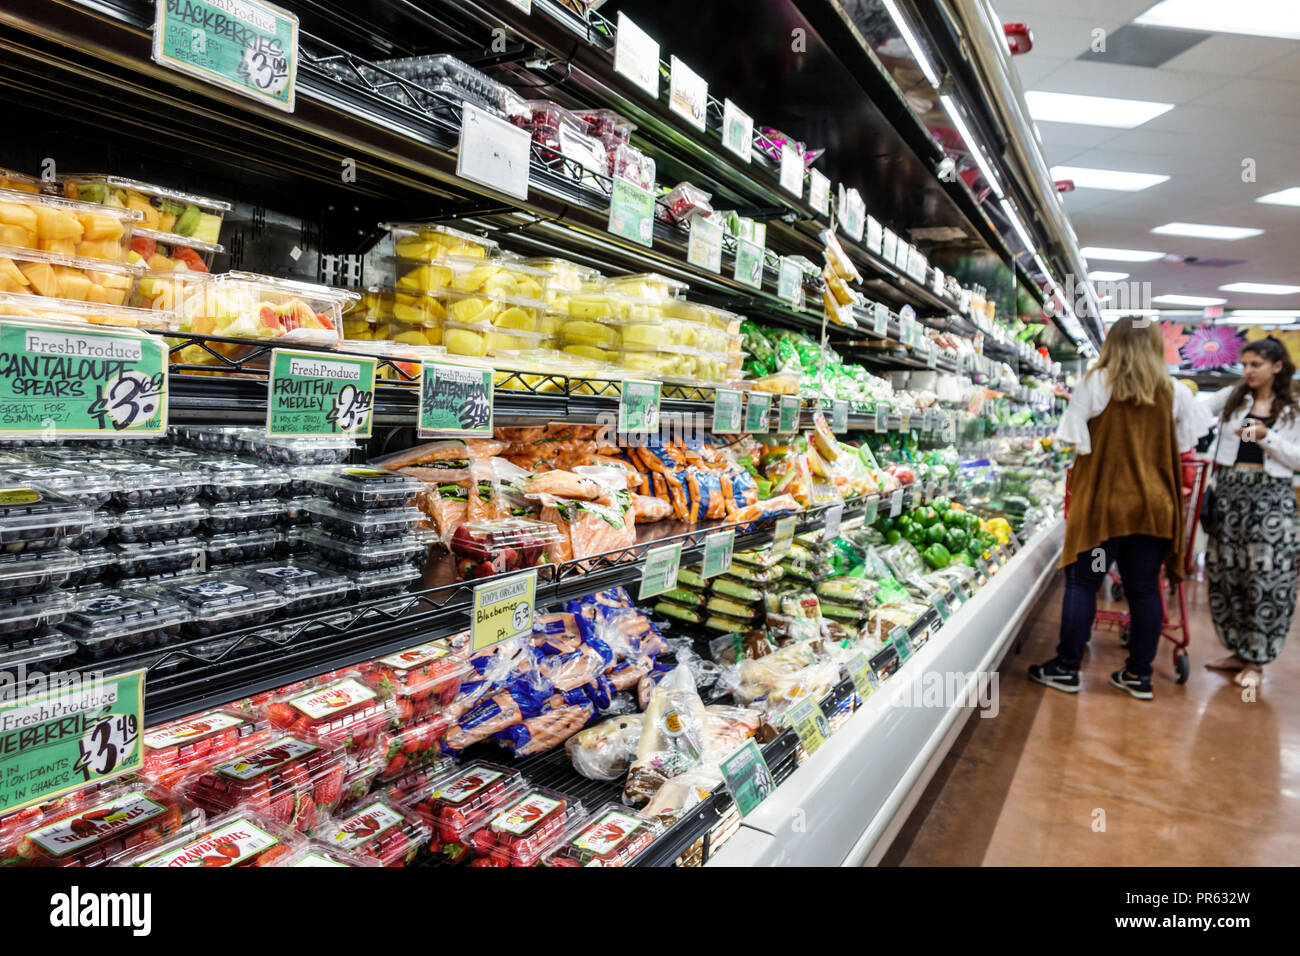 Miami Florida Trader Joe's supermarket grocery store food inside shopping display sale fruit produce - Stock Image